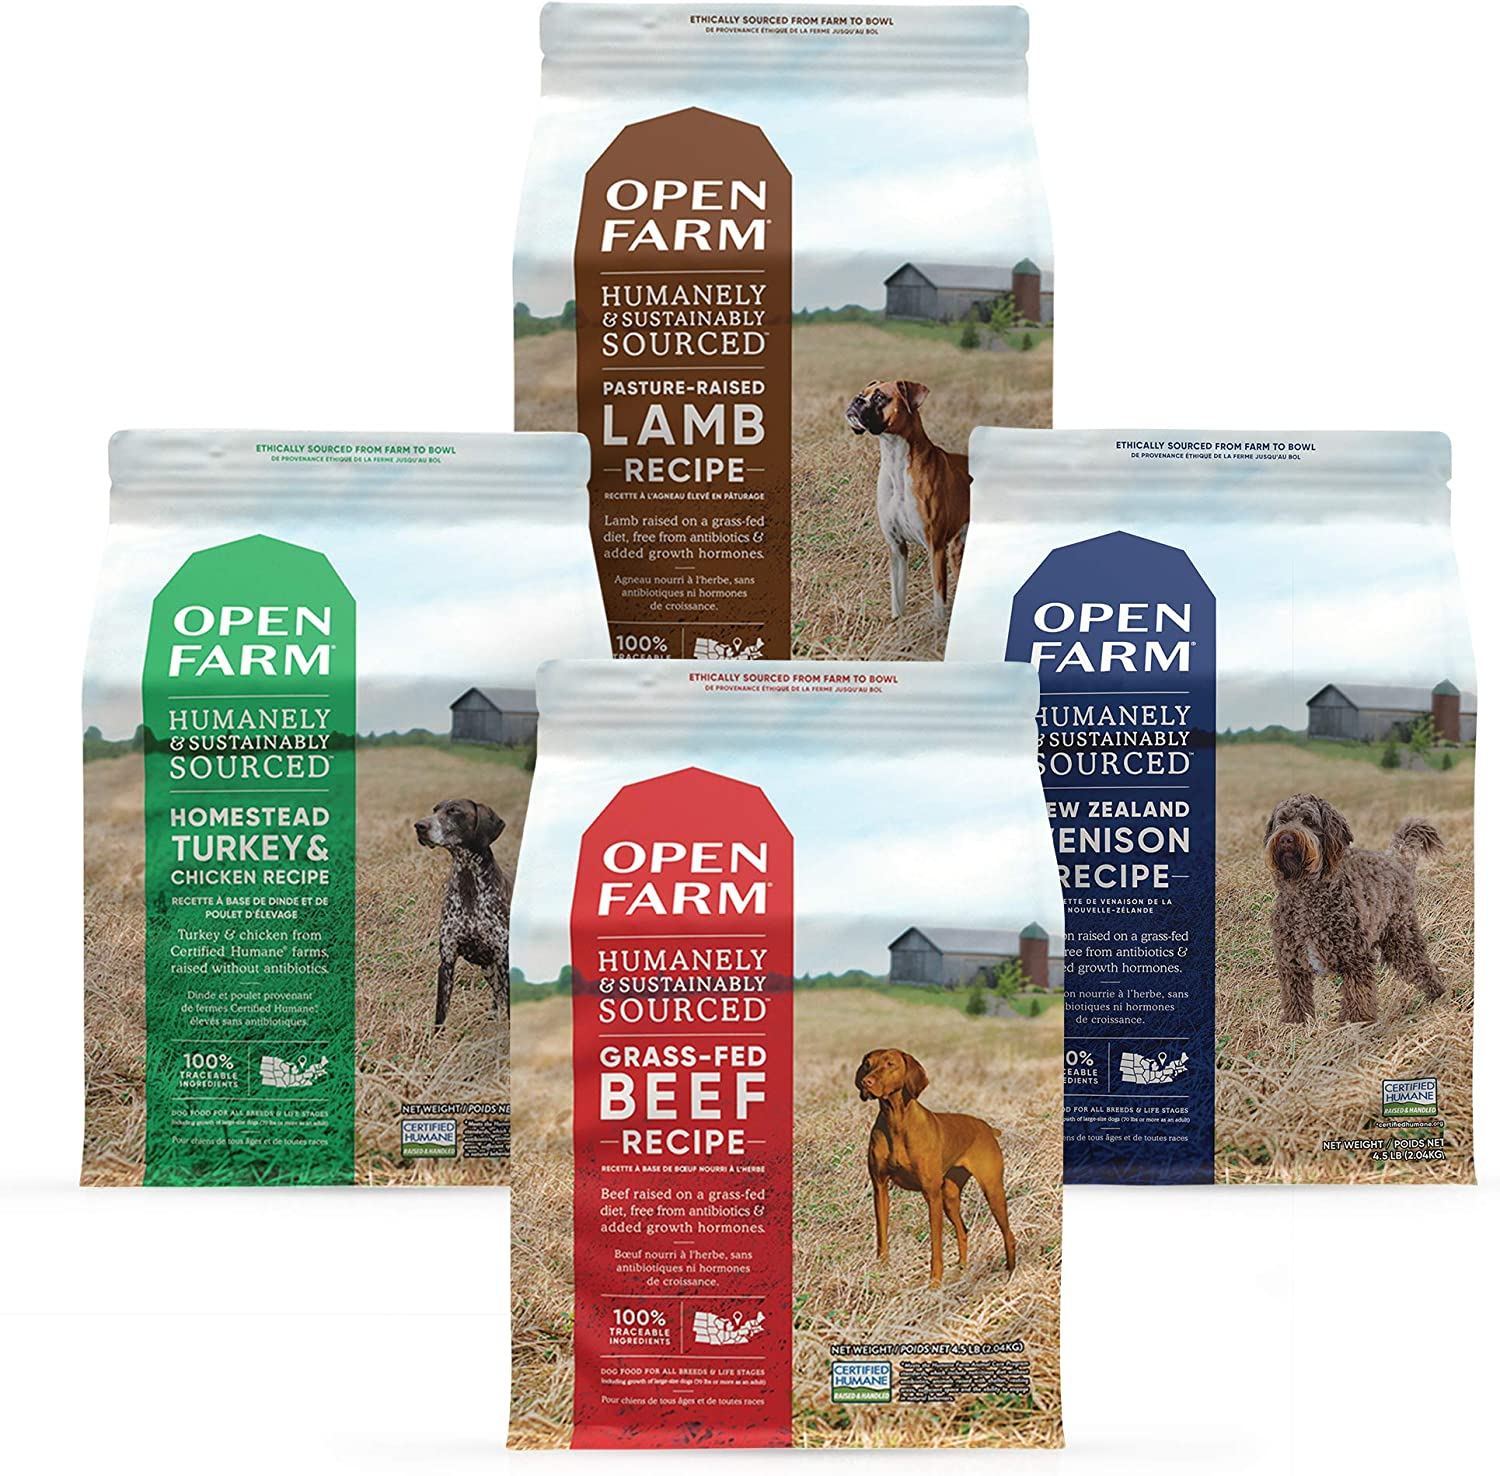 Open Farm Grain Free Dry Dog Food Bundle with Grass-Fed Beef, New Zealand Venison, Pasture-Raised Lamb and Homestead Turkey and Chicken, 4 Pack Bundle